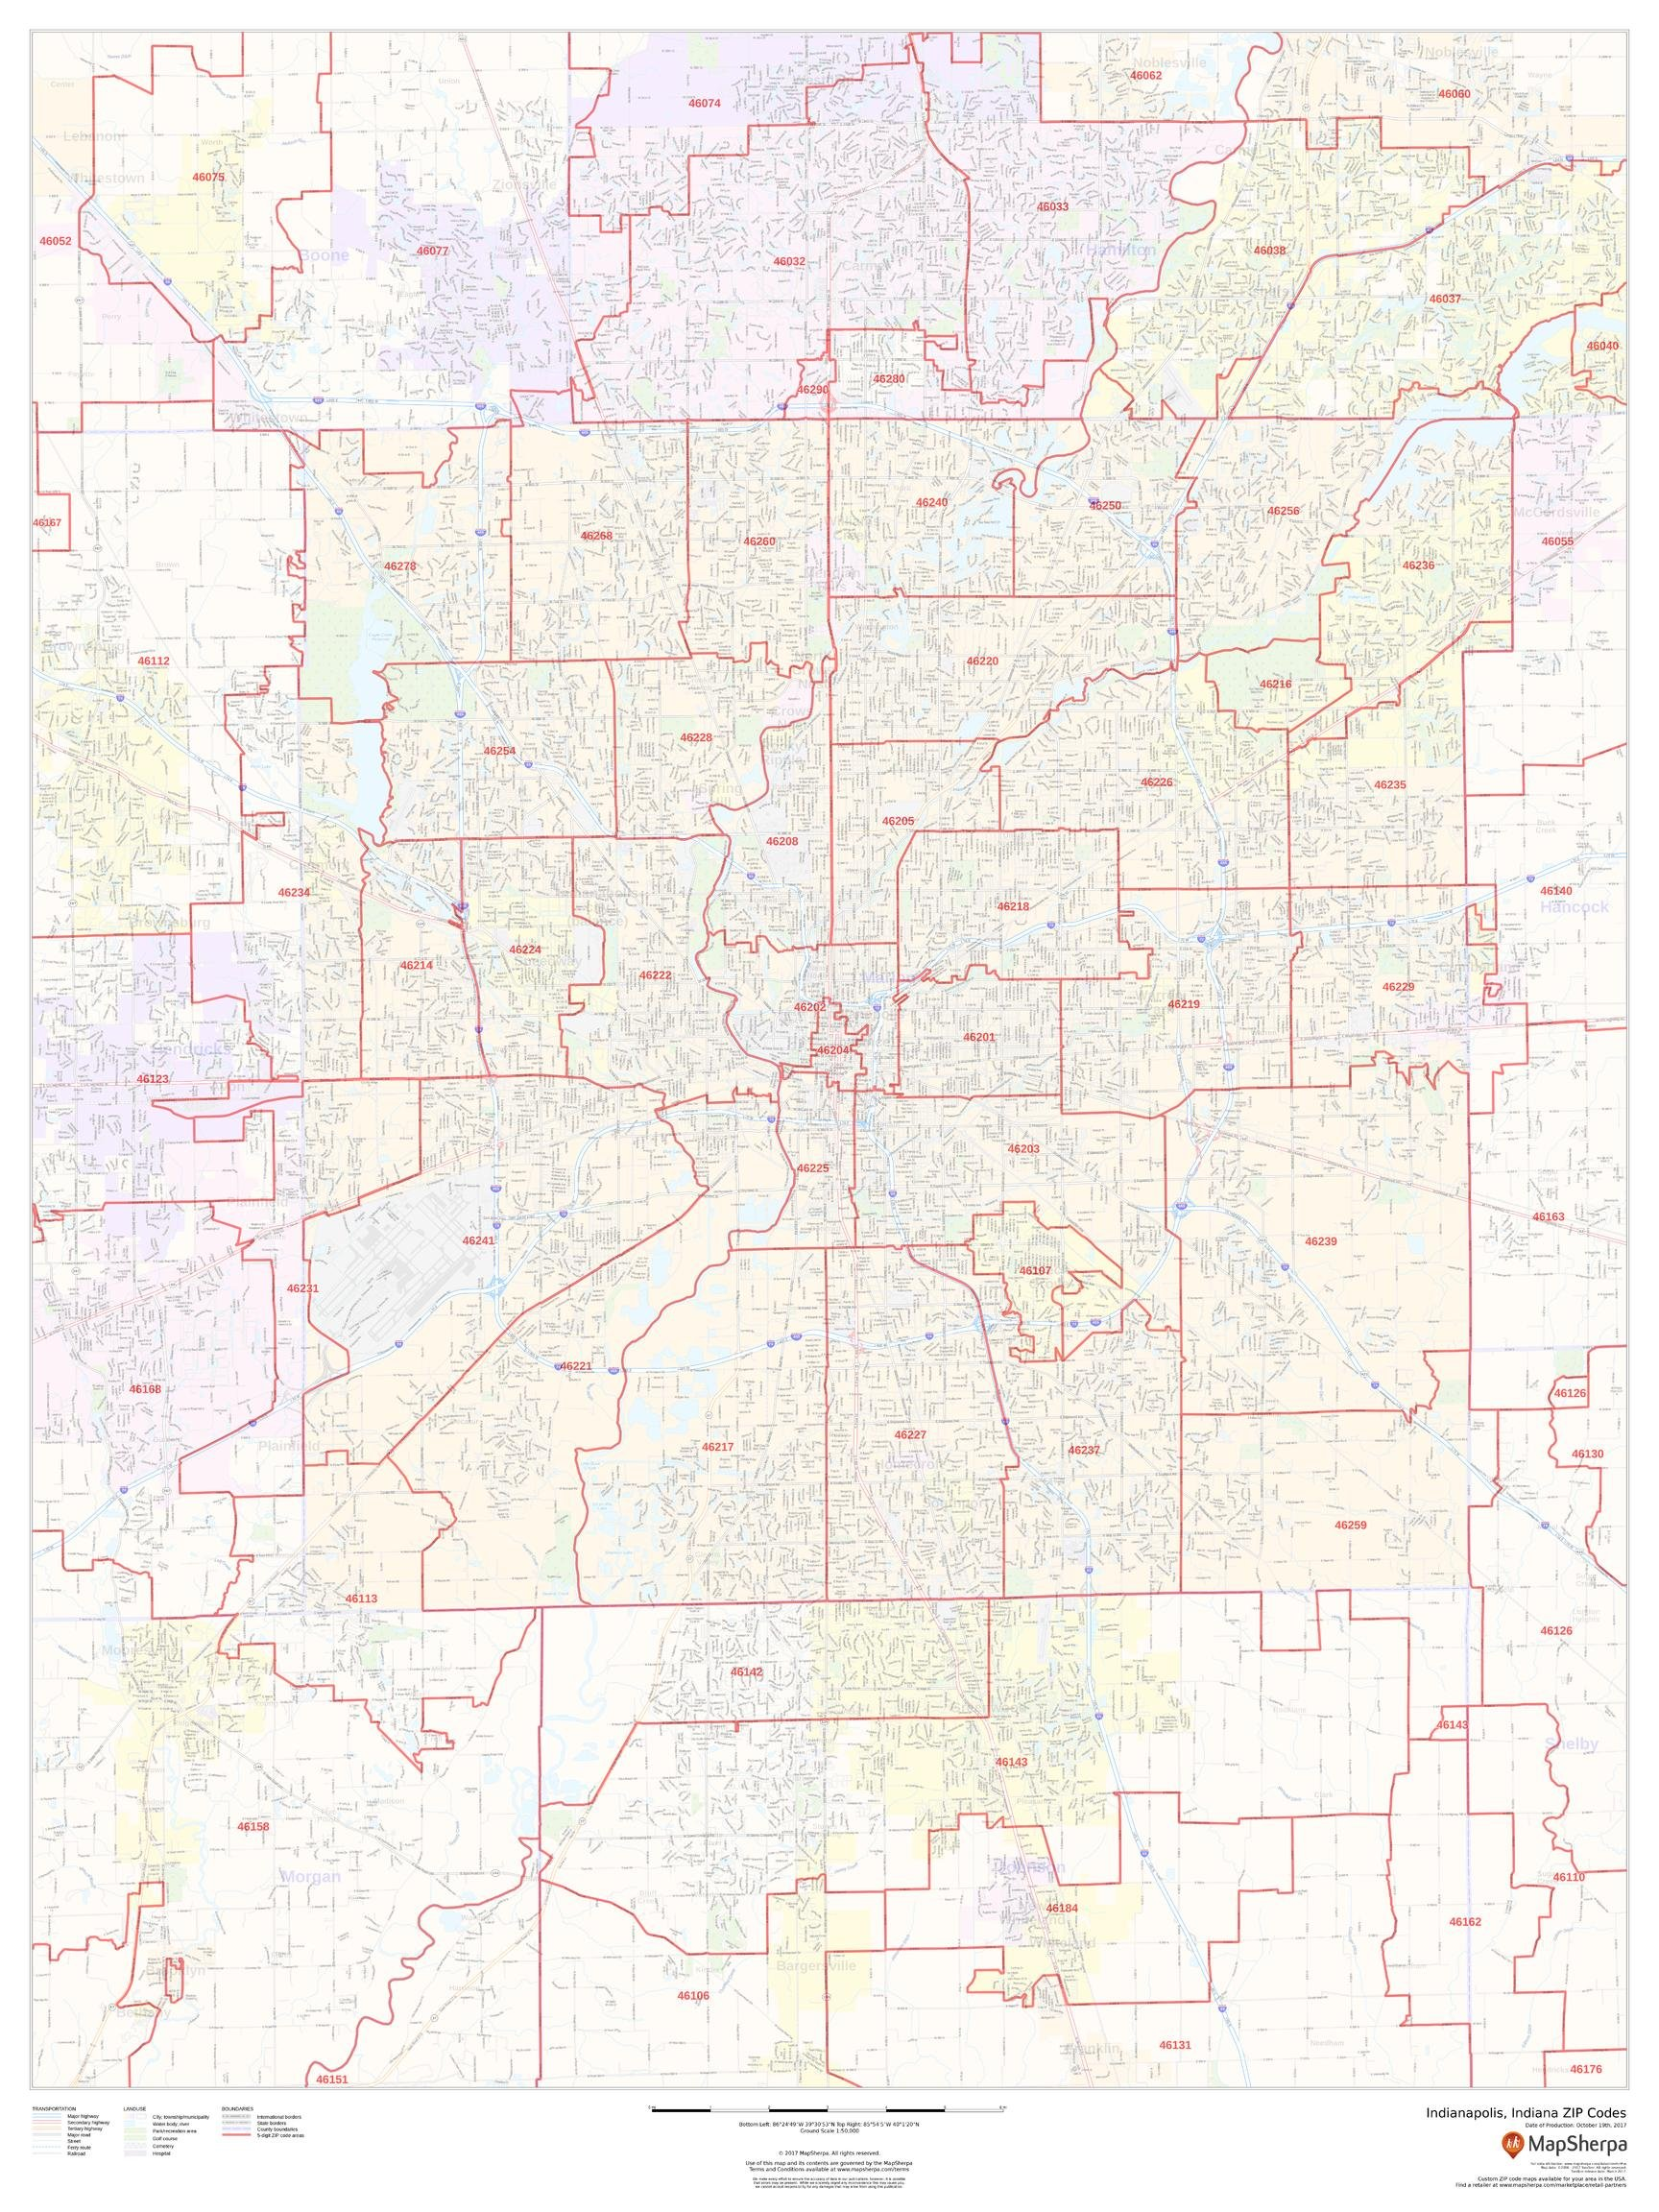 Indianapolis, Indiana ZIP Codes - 36 x 48 inches - Laminated - Flat Tubed